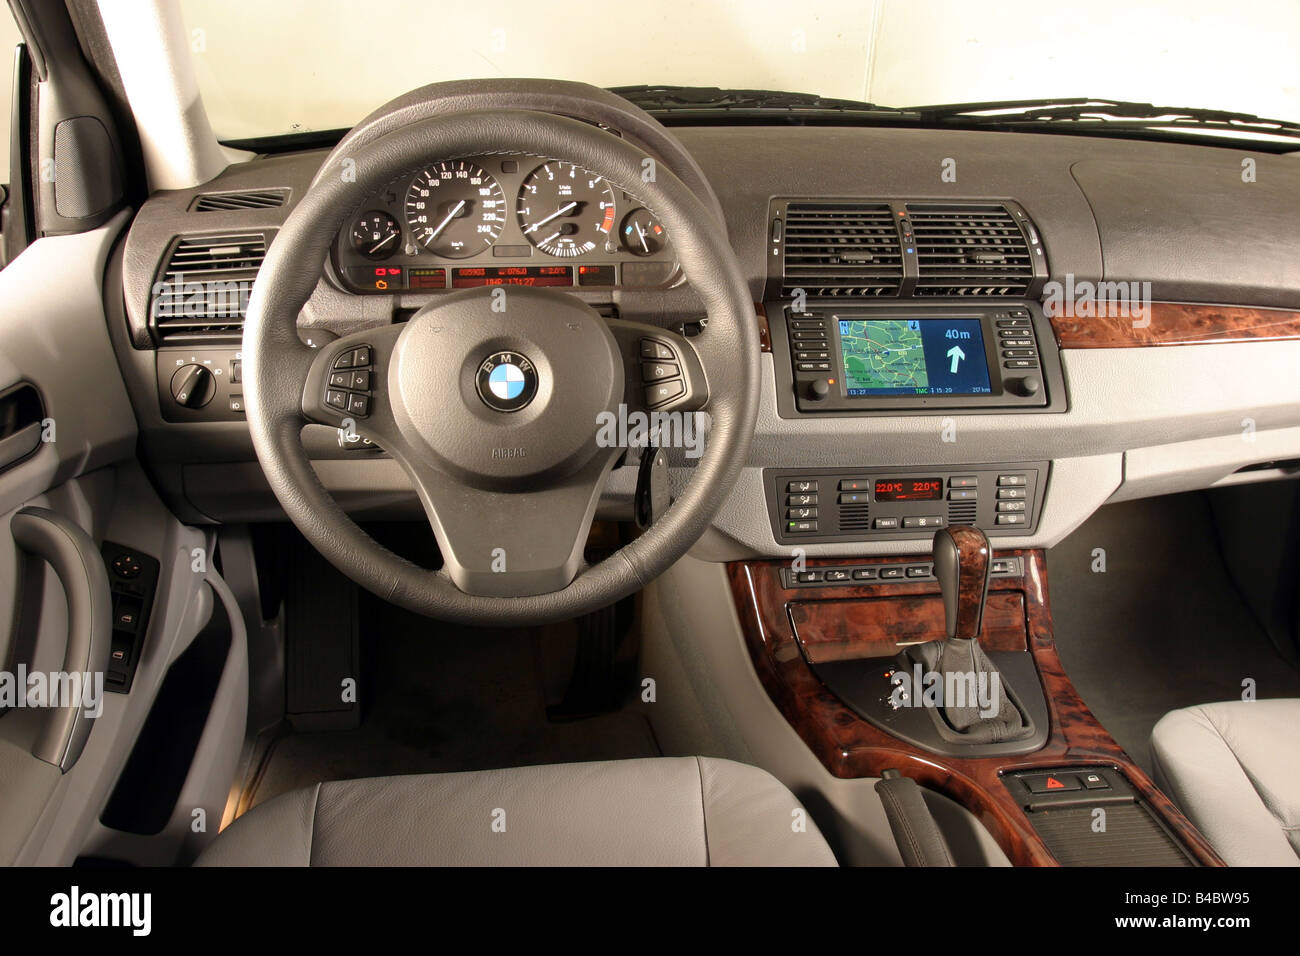 car bmw x5 cross country vehicle model year 2003 blue stock photo royalty free image. Black Bedroom Furniture Sets. Home Design Ideas